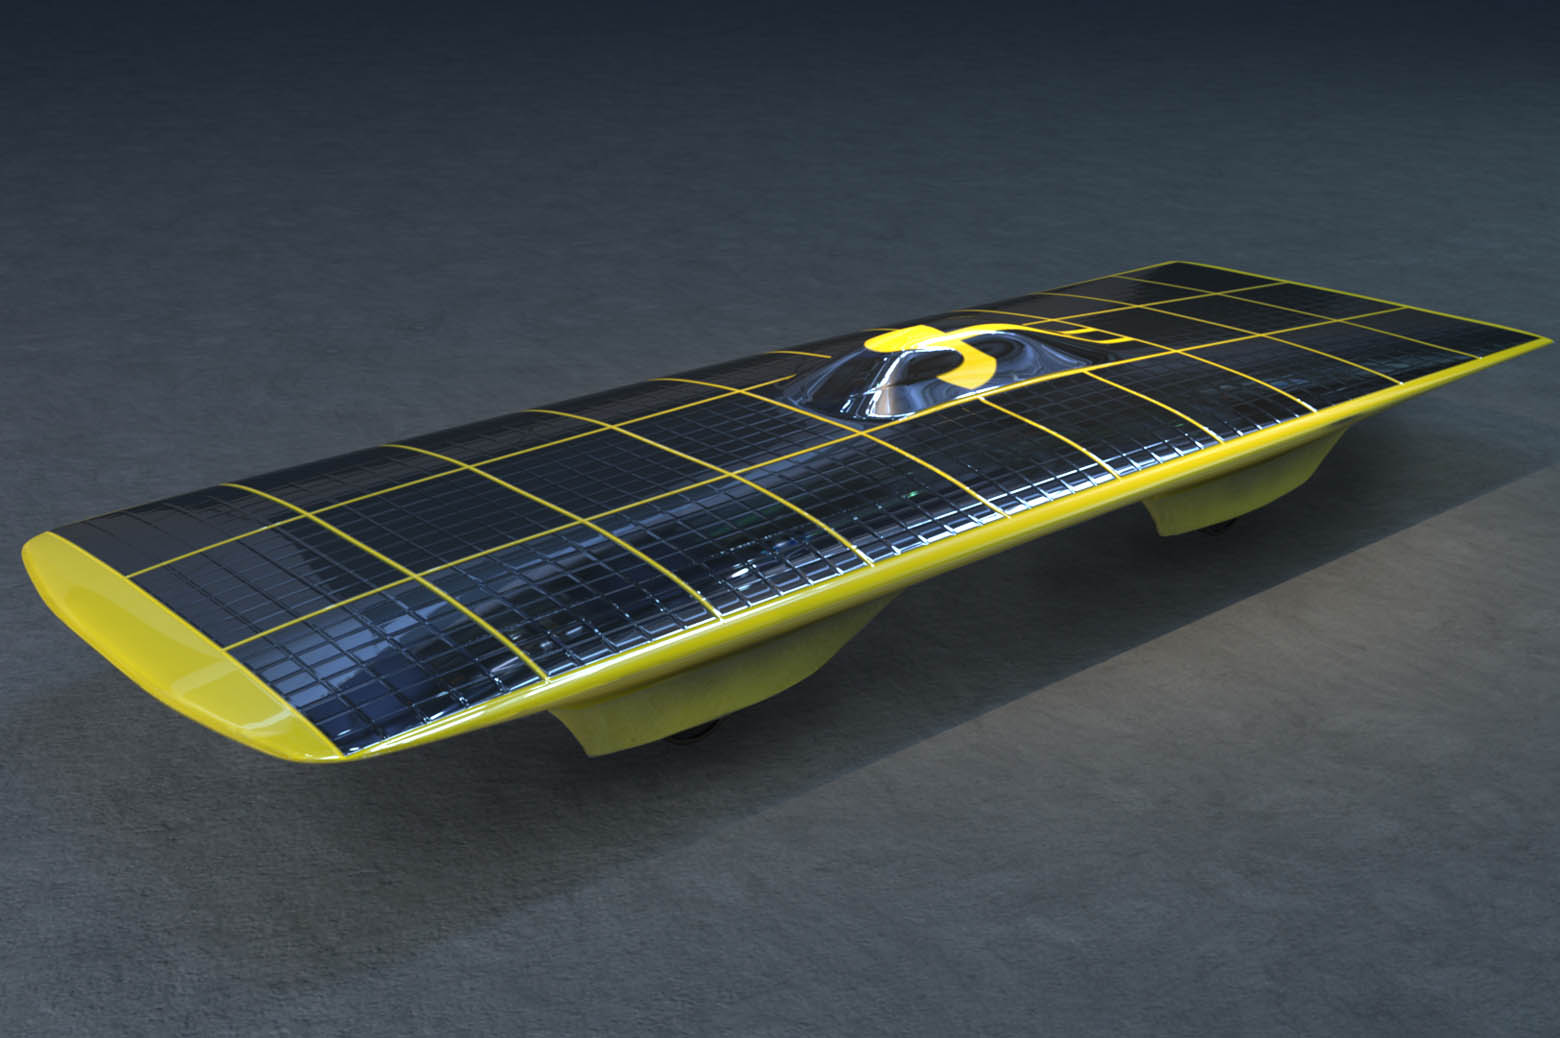 Illustration of solar car, Spectrum.